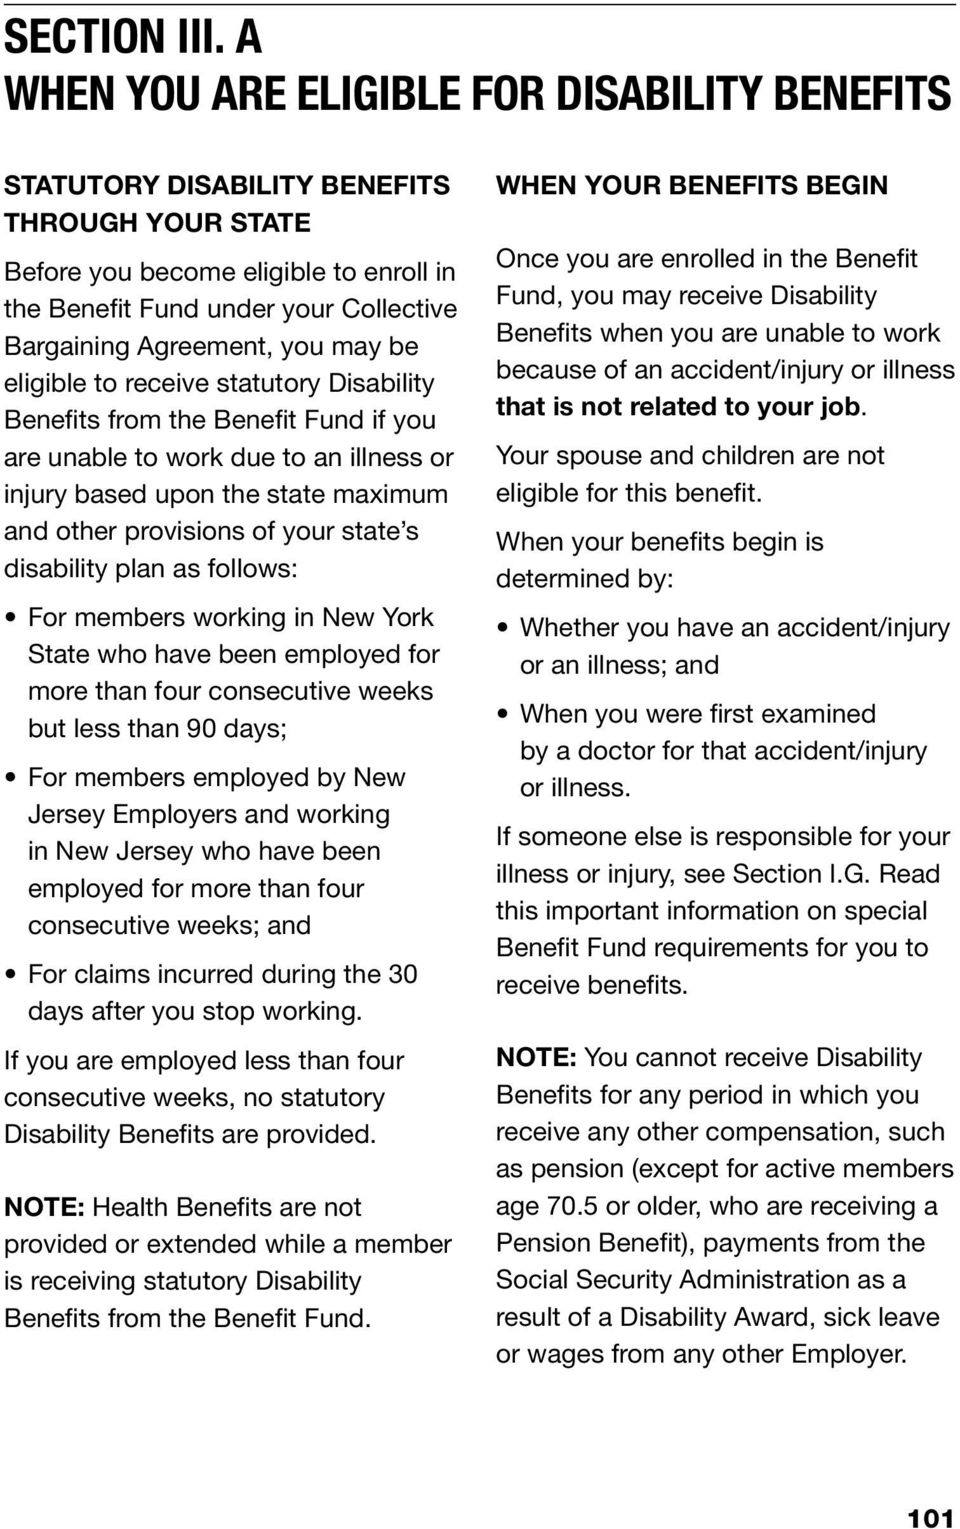 you may be eligible to receive statutory Disability Benefits from the Benefit Fund if you are unable to work due to an illness or injury based upon the state maximum and other provisions of your